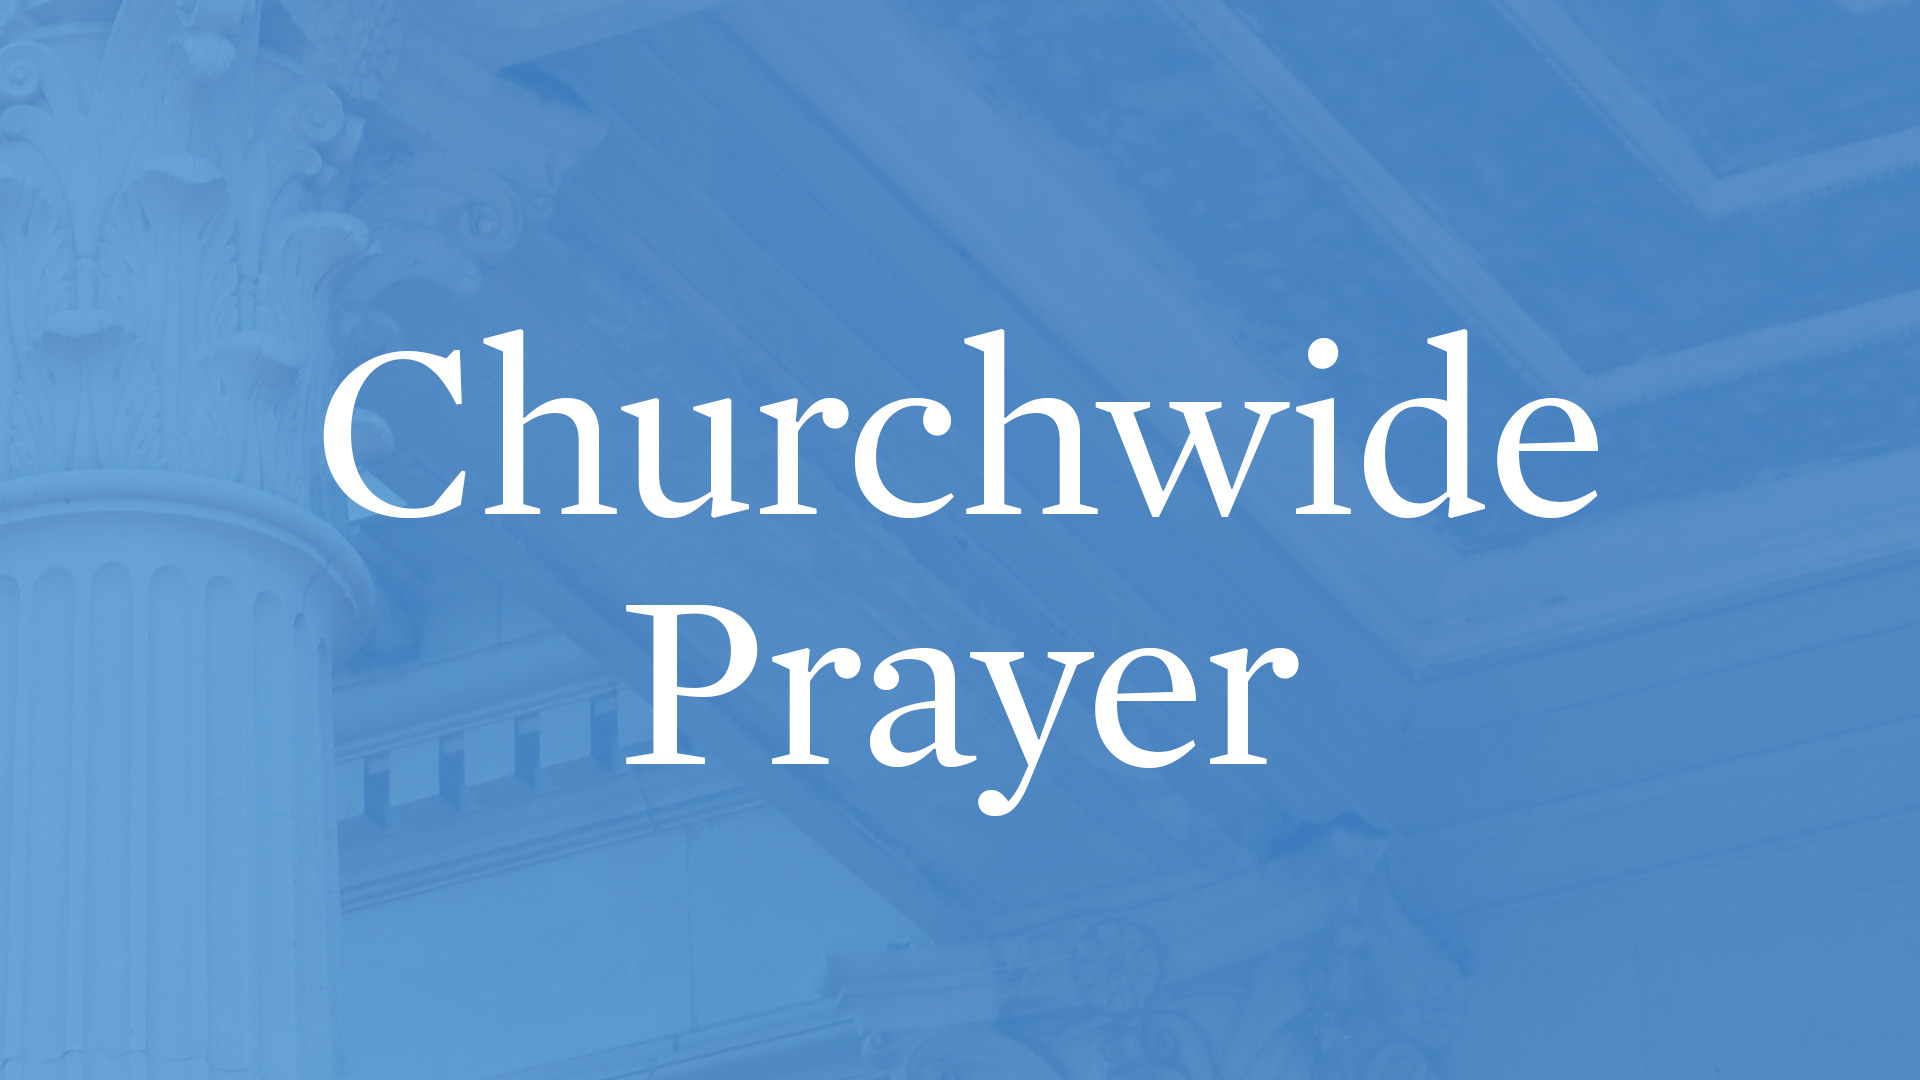 Churchwide Prayer